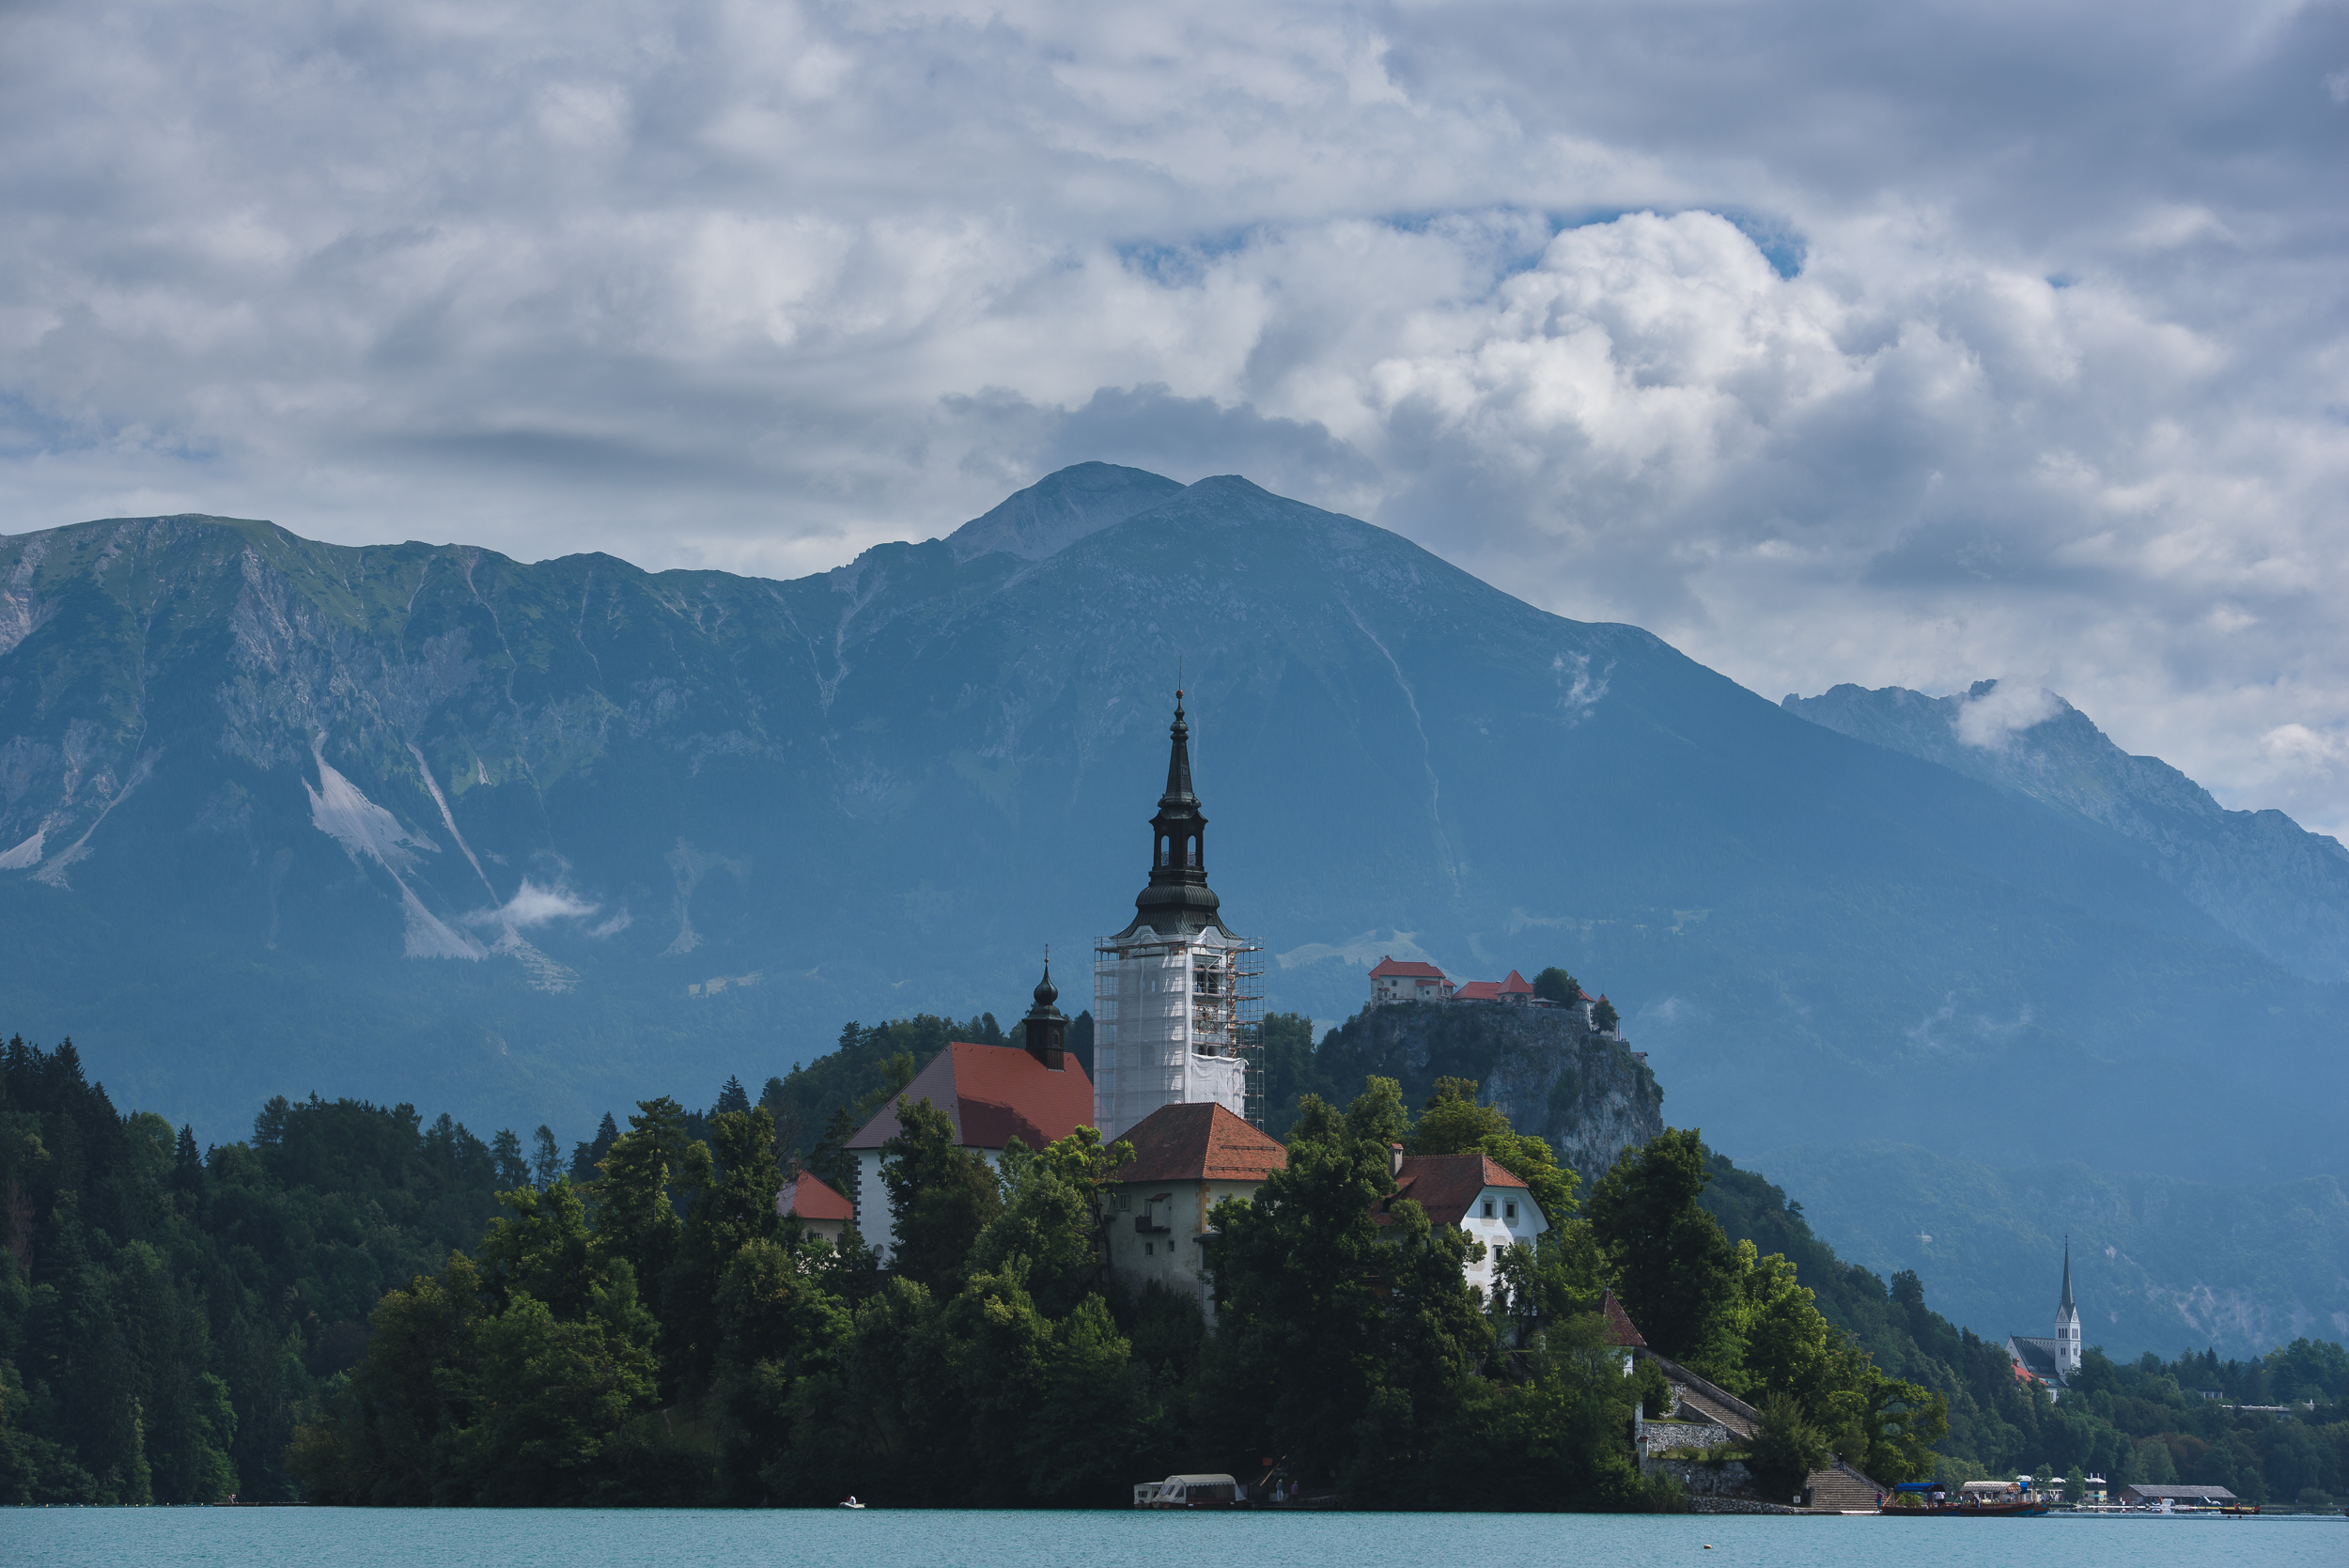 2018-07-22_Web_4520_Bled Island and Mountains.jpg